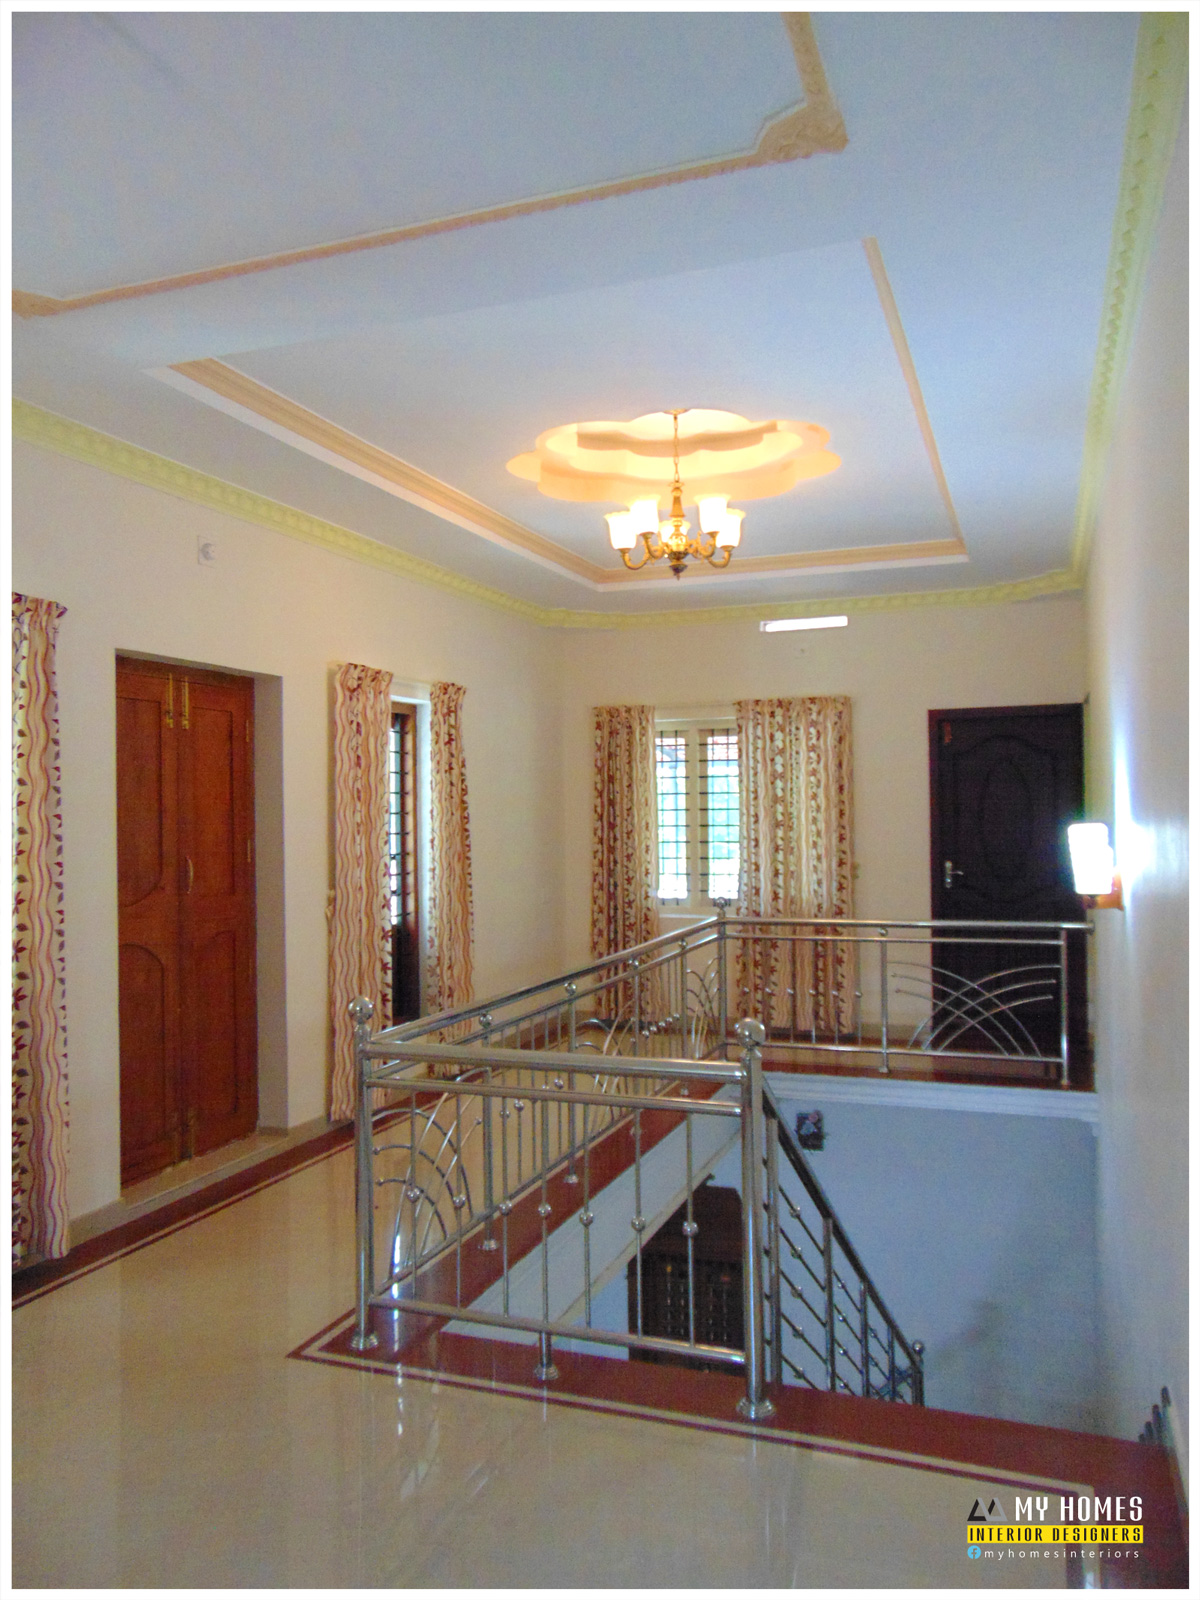 Kerala interior design ideas from designing company thrissur for House living room design